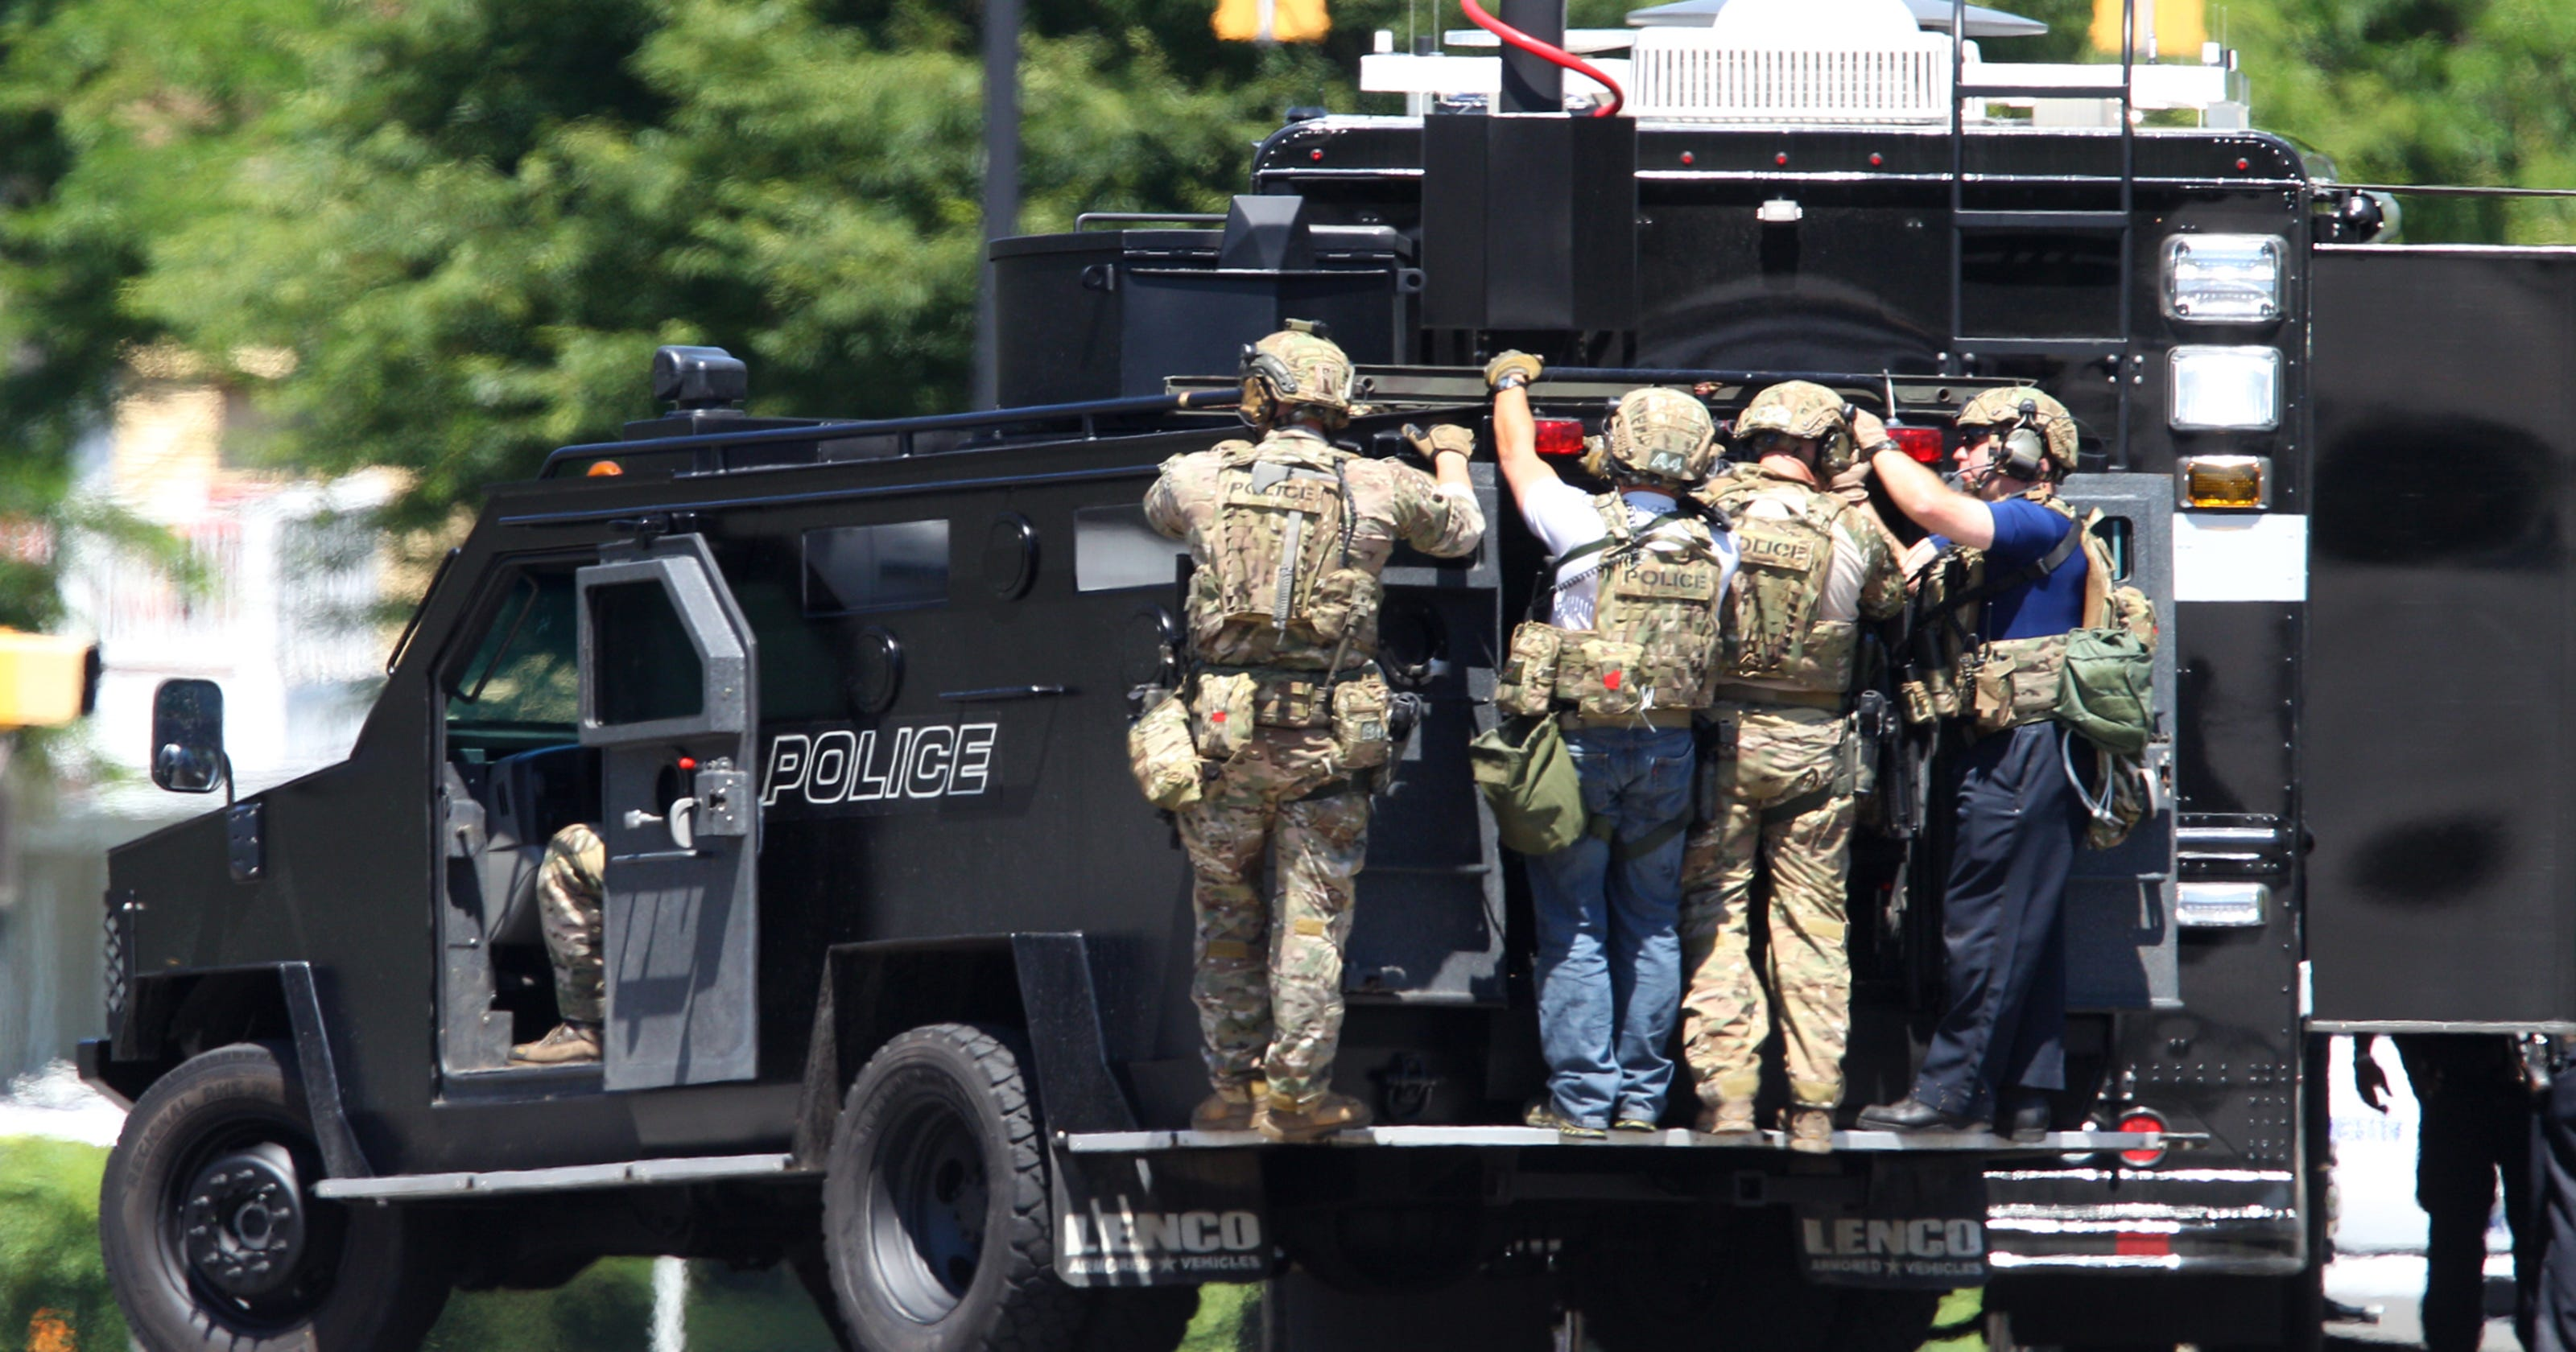 Local police have military gear, too